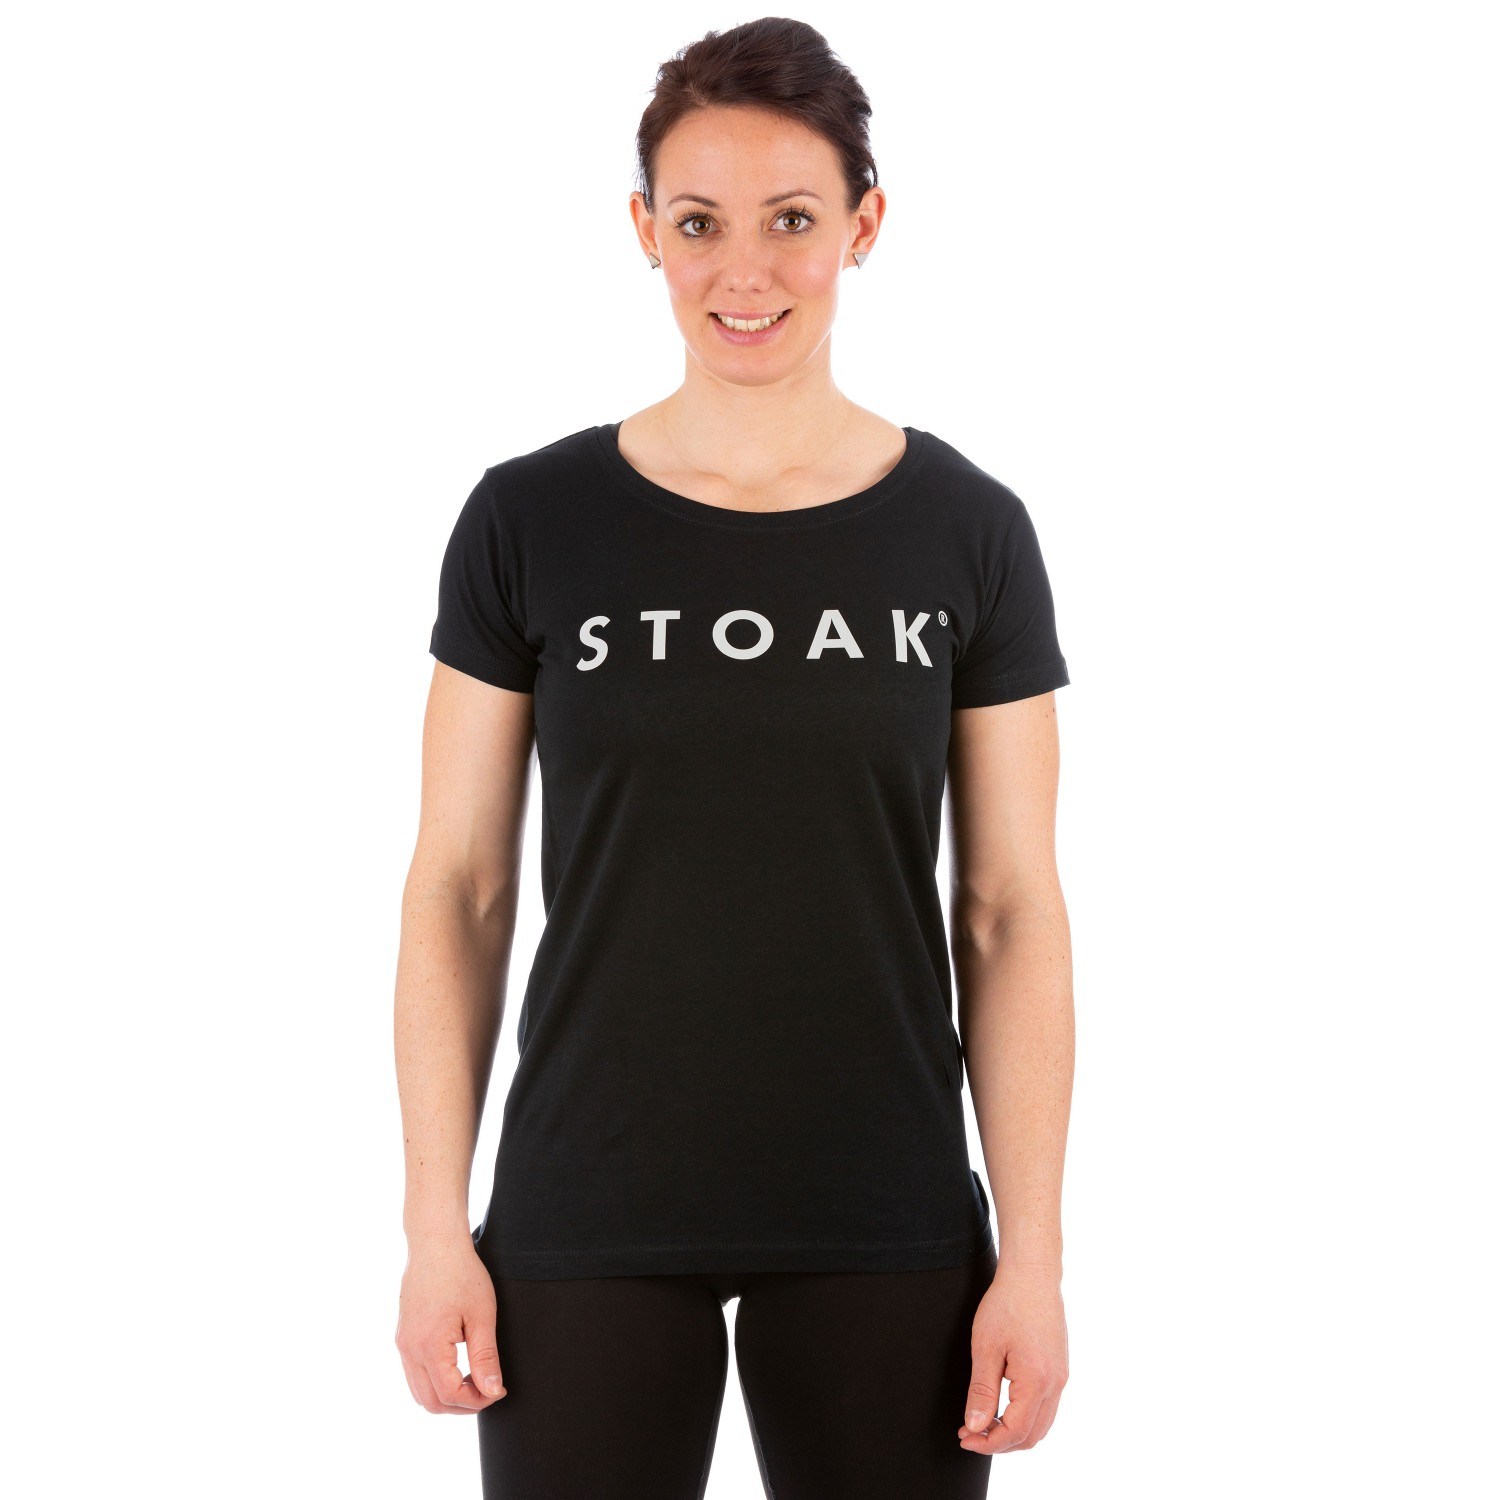 STOAK CARBON T-Shirt